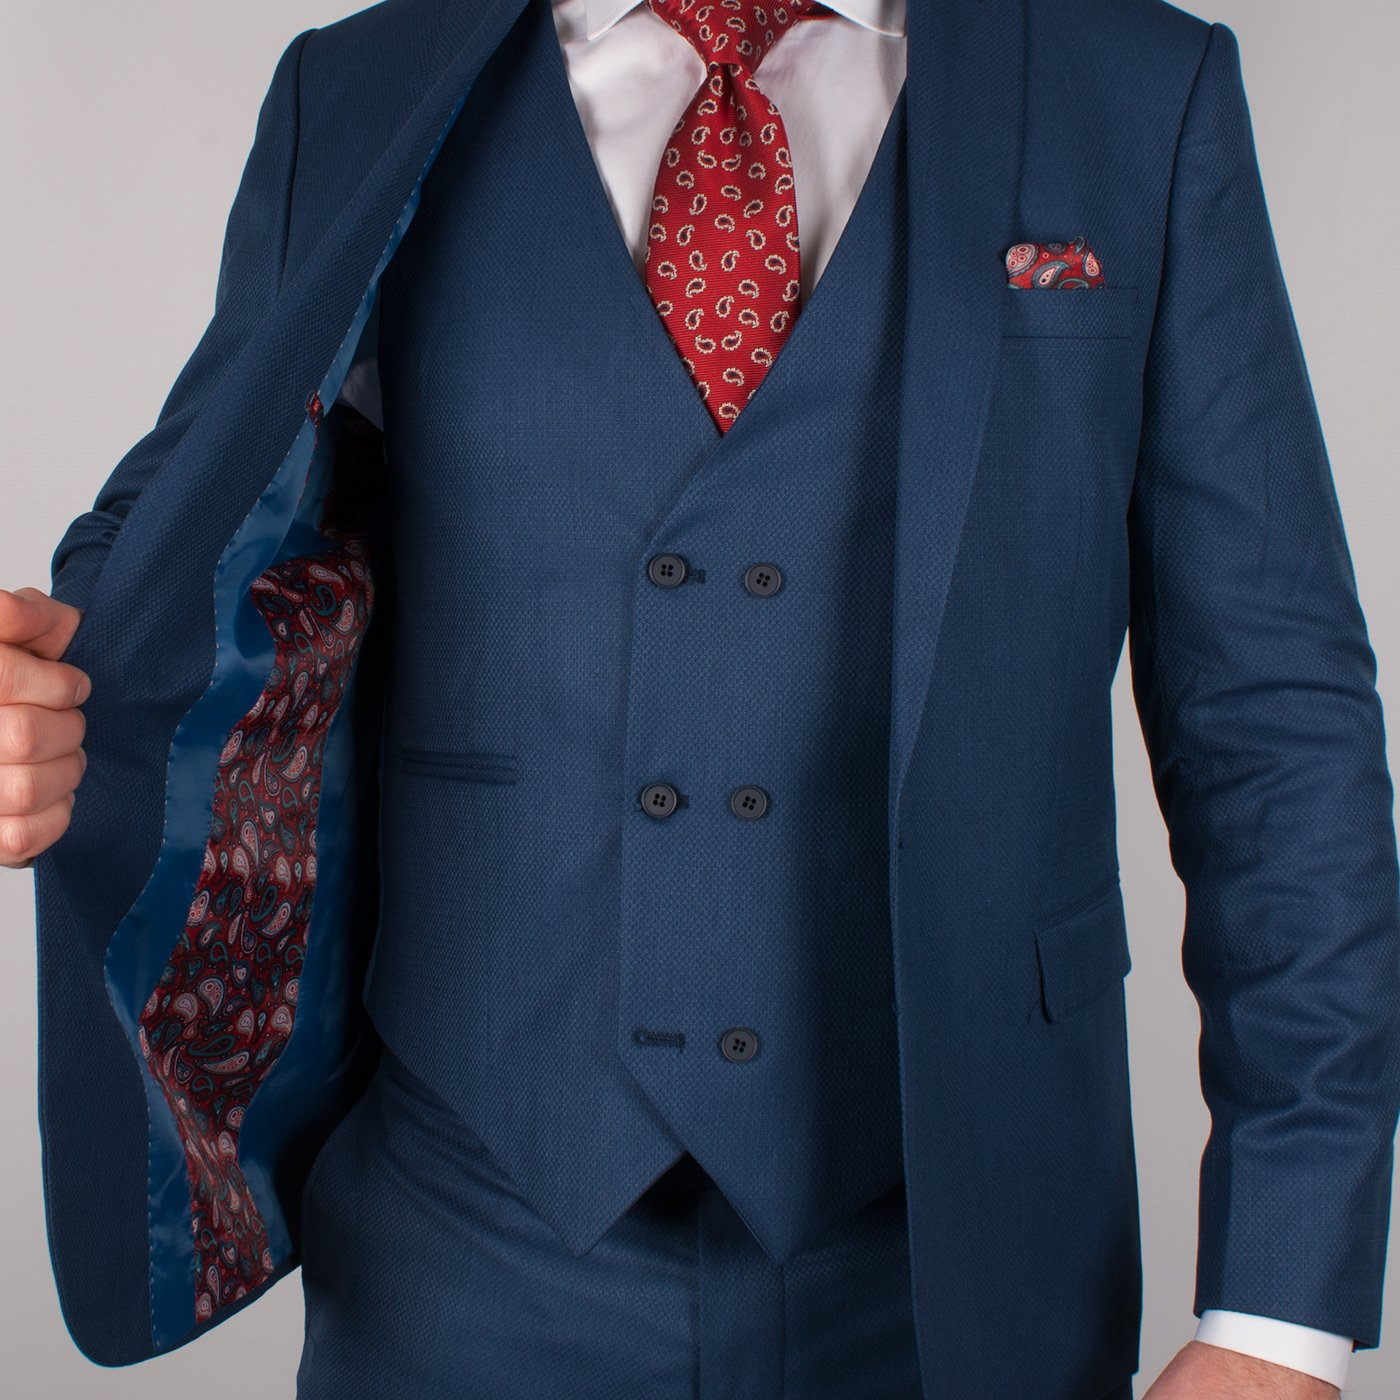 Scott Peak Lapel Suit